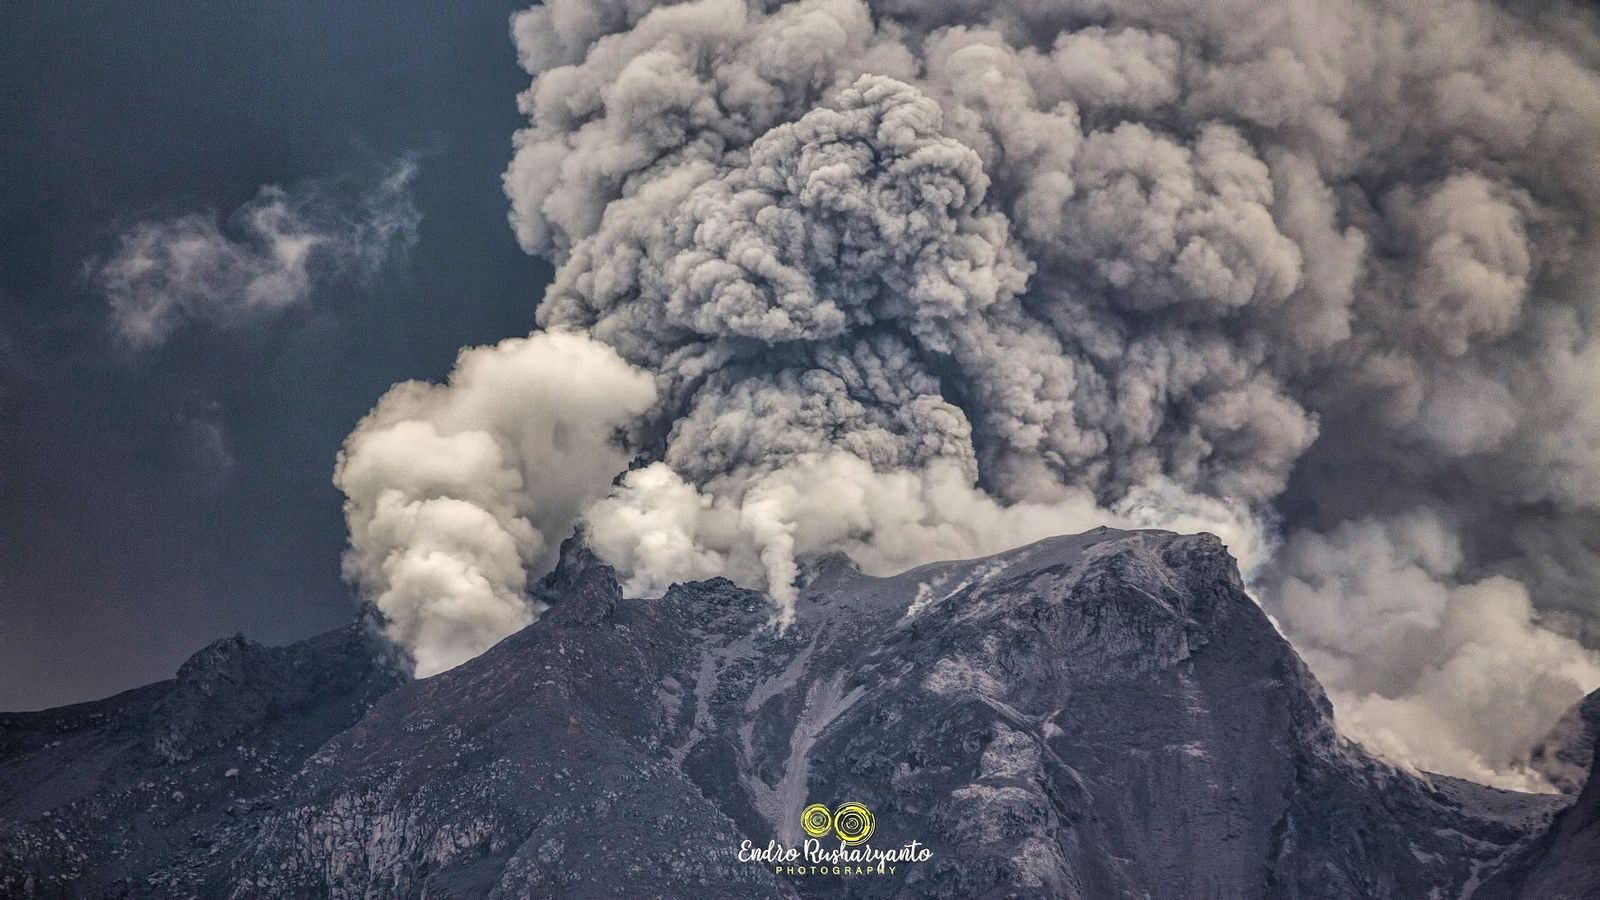 Sinabung - steam jets, two-tone plumes of steam & gas and ash -19.08.2020 / 11.51 am WIB - photo Endro Rusharyanto